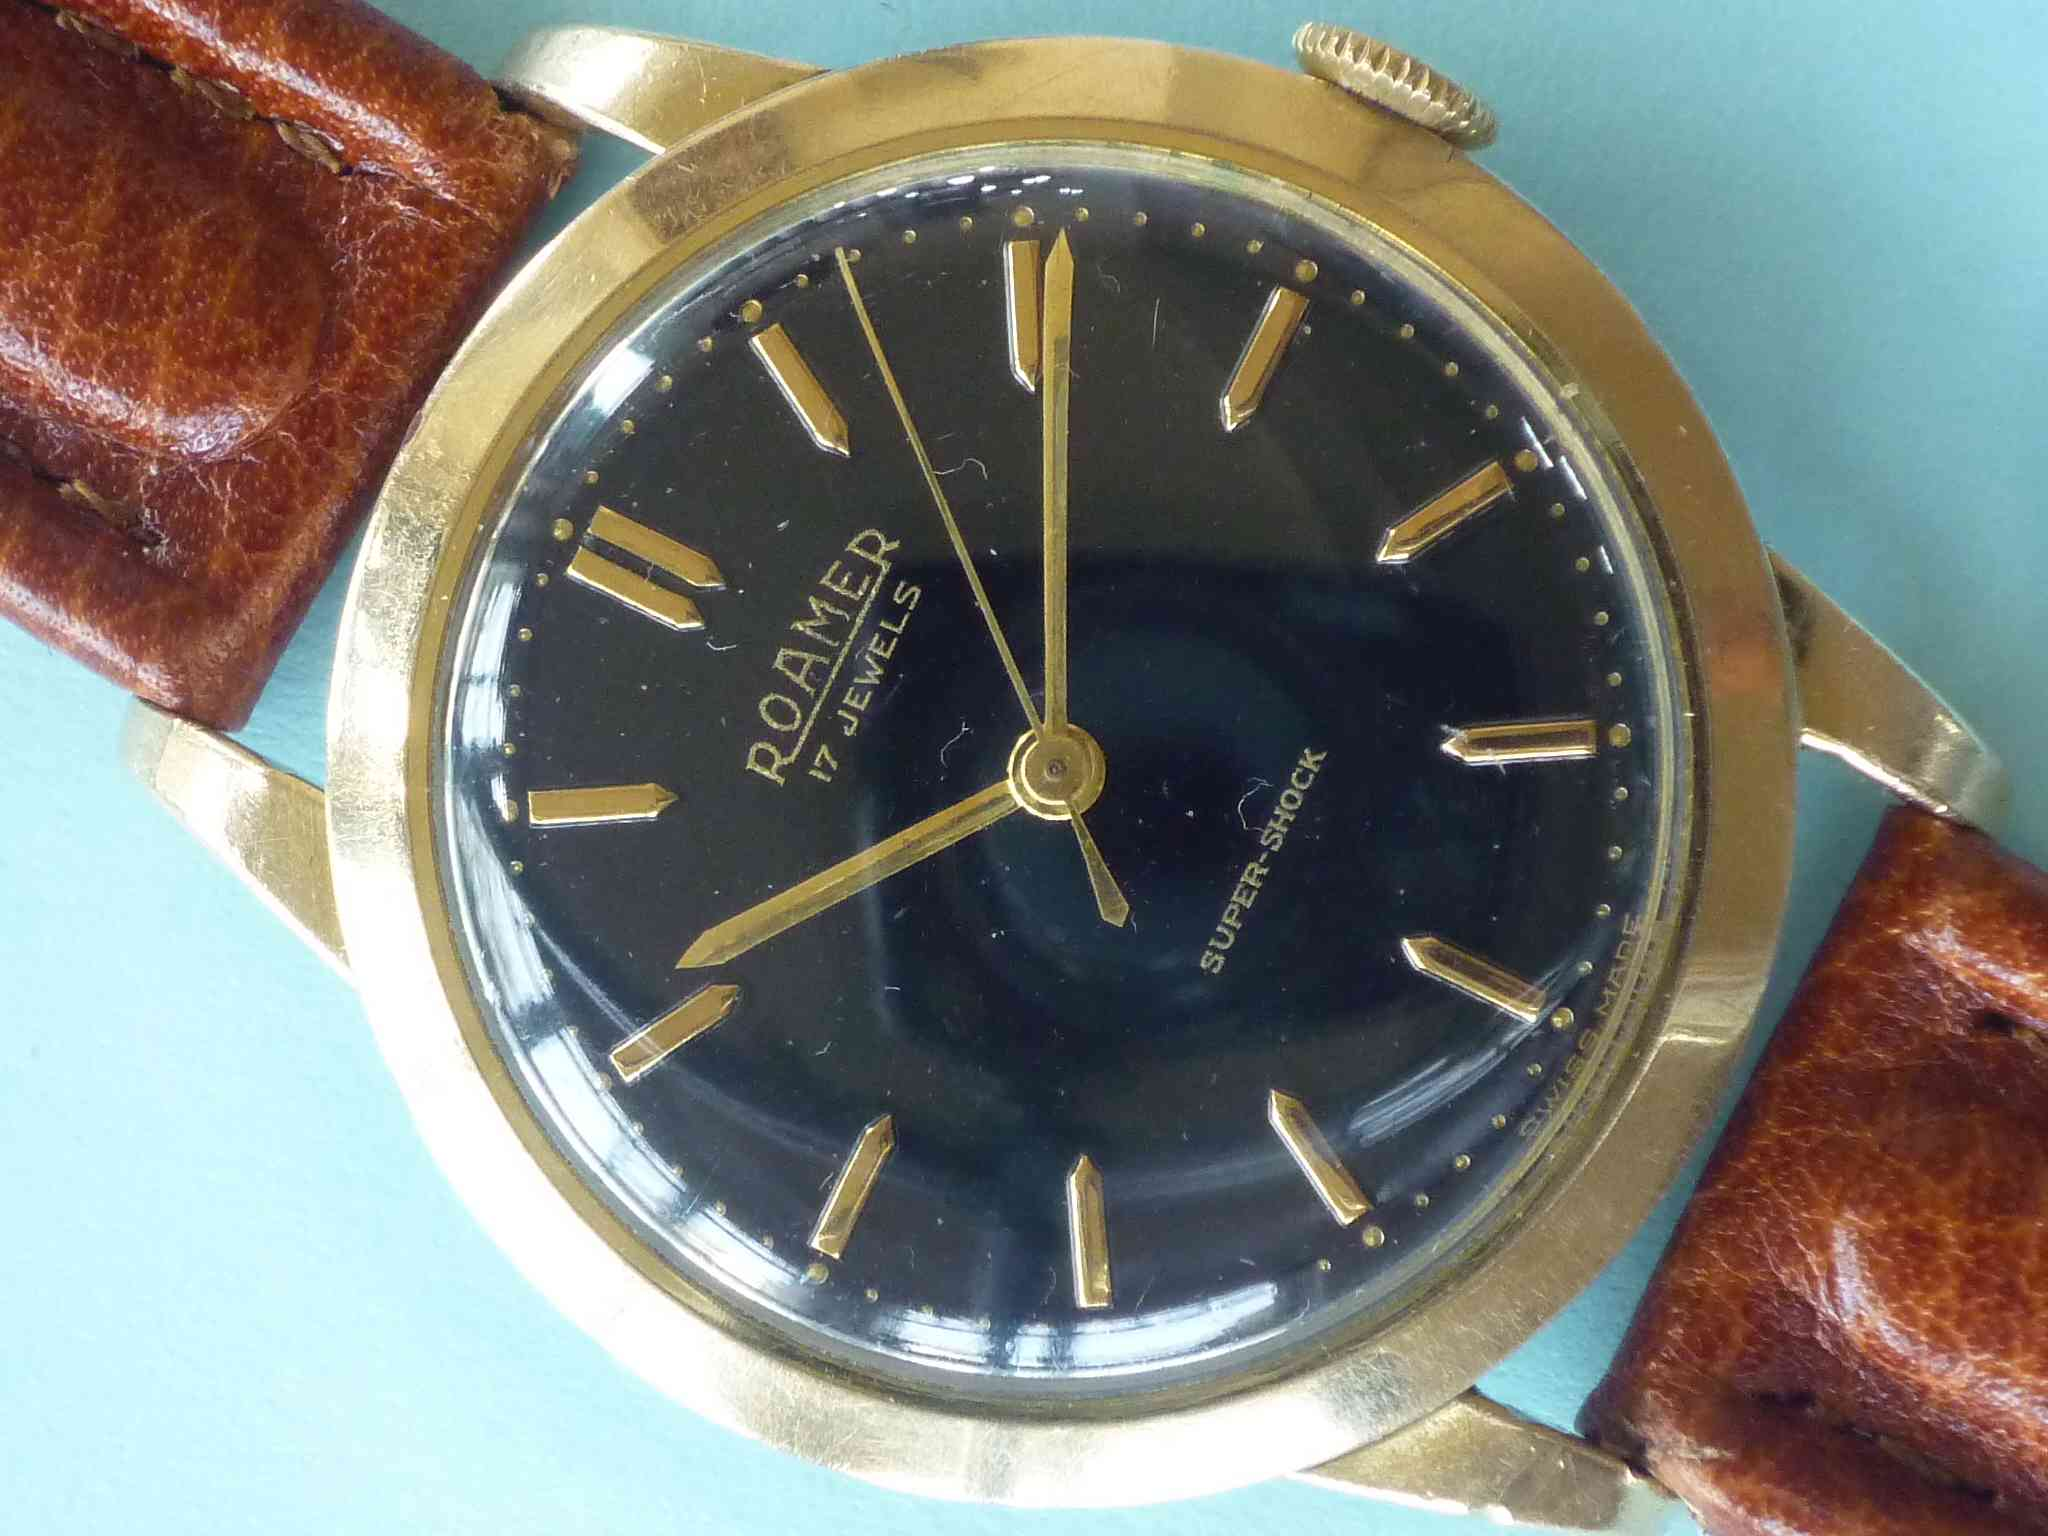 years an founded brand this five swiss online company replica season is the twenty watch muller franck therefore watches and popular old in store definitely independent